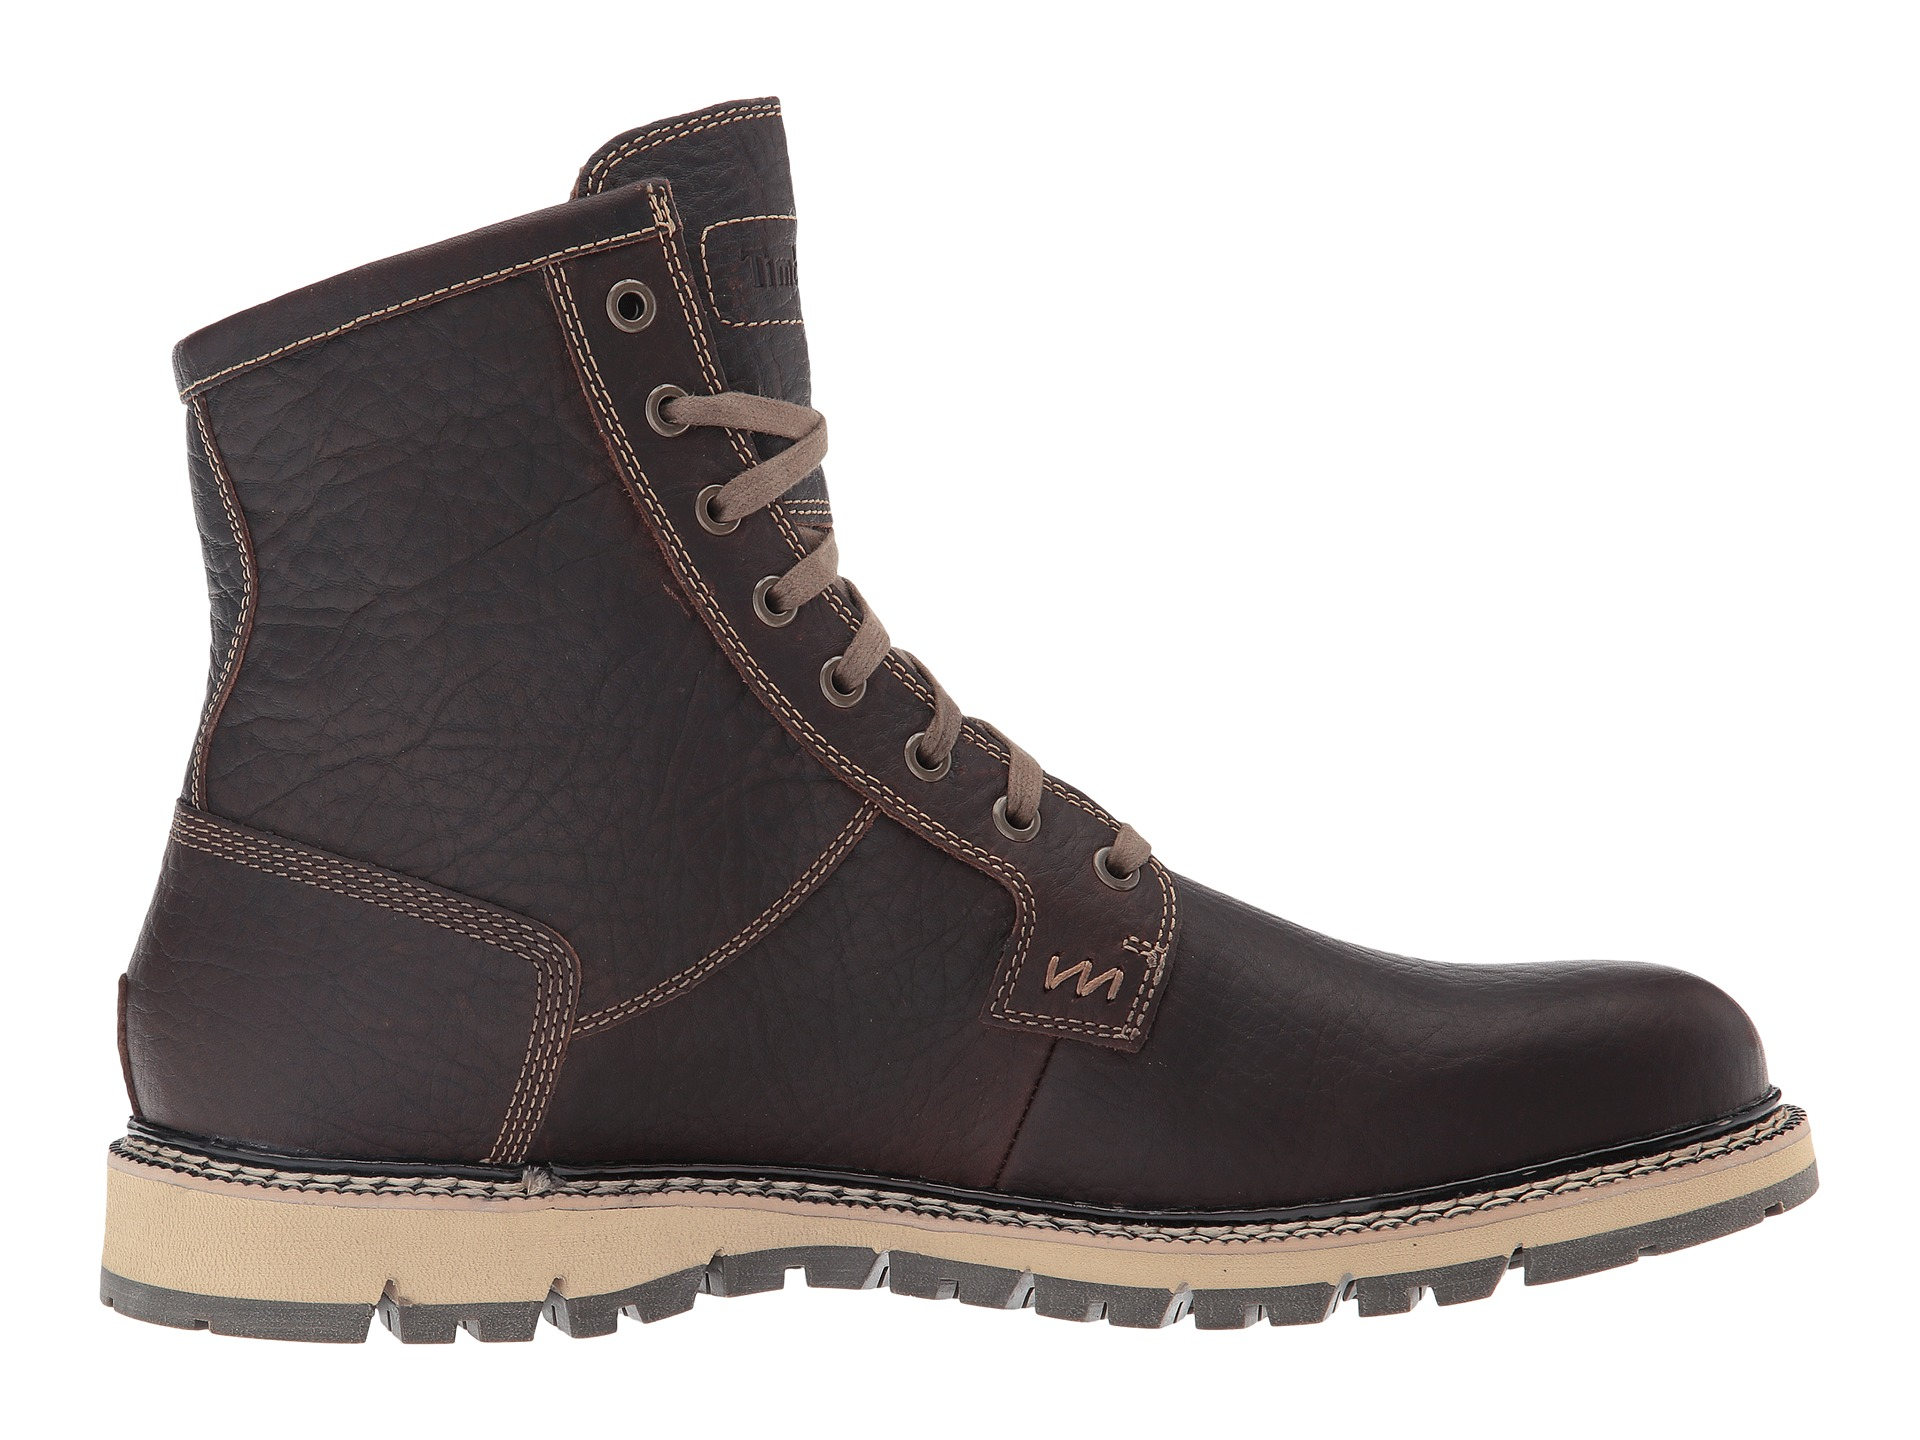 timberland britton hill waterproof plain toe boot dark. Black Bedroom Furniture Sets. Home Design Ideas